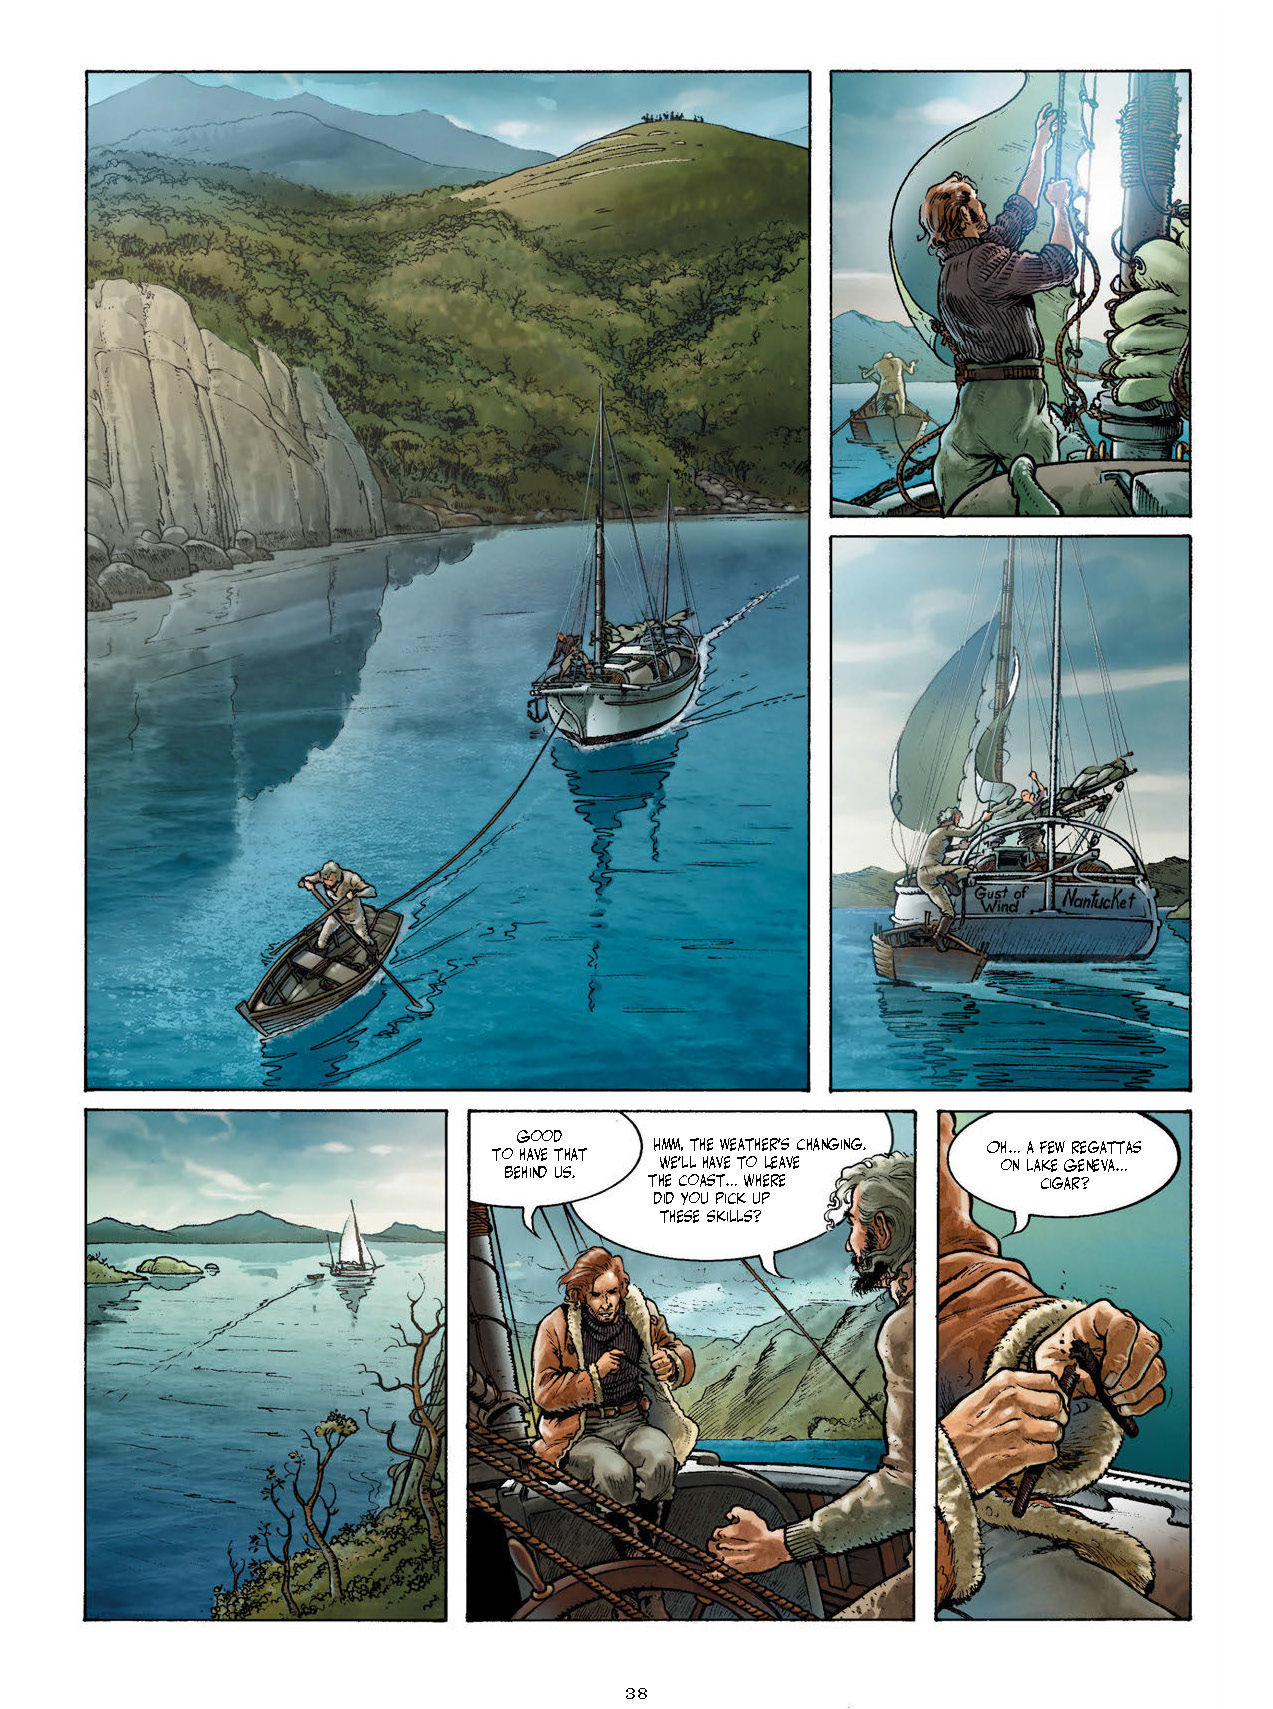 Cape Horn graphic novel review